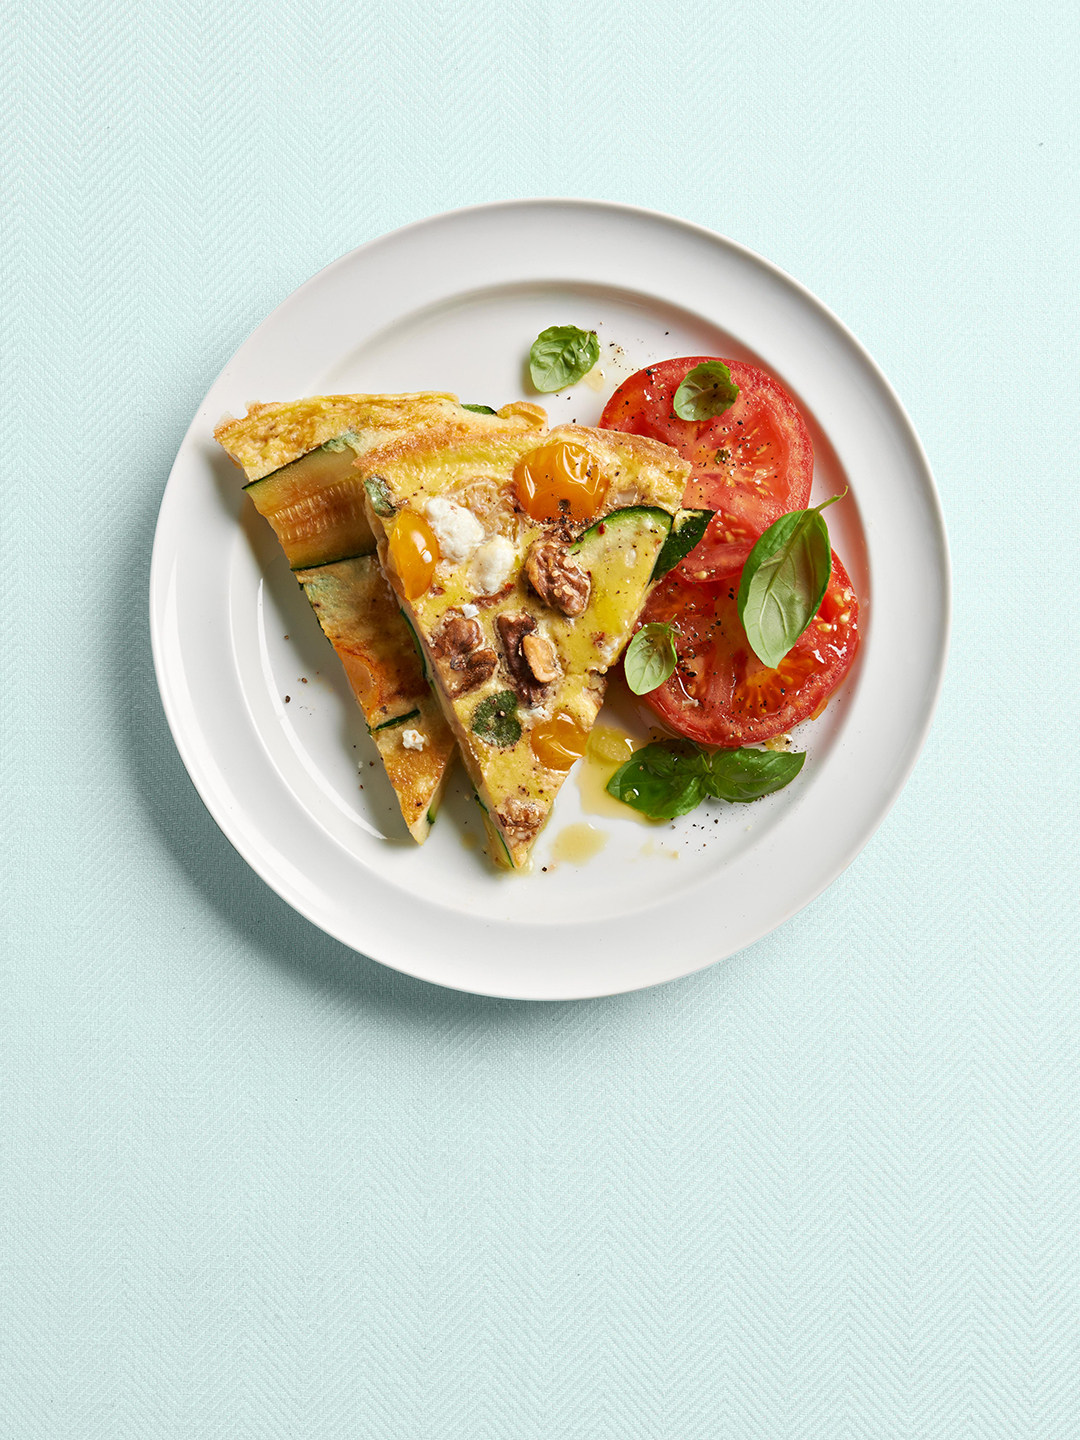 Zucchini and Tomato Frittata on white plate